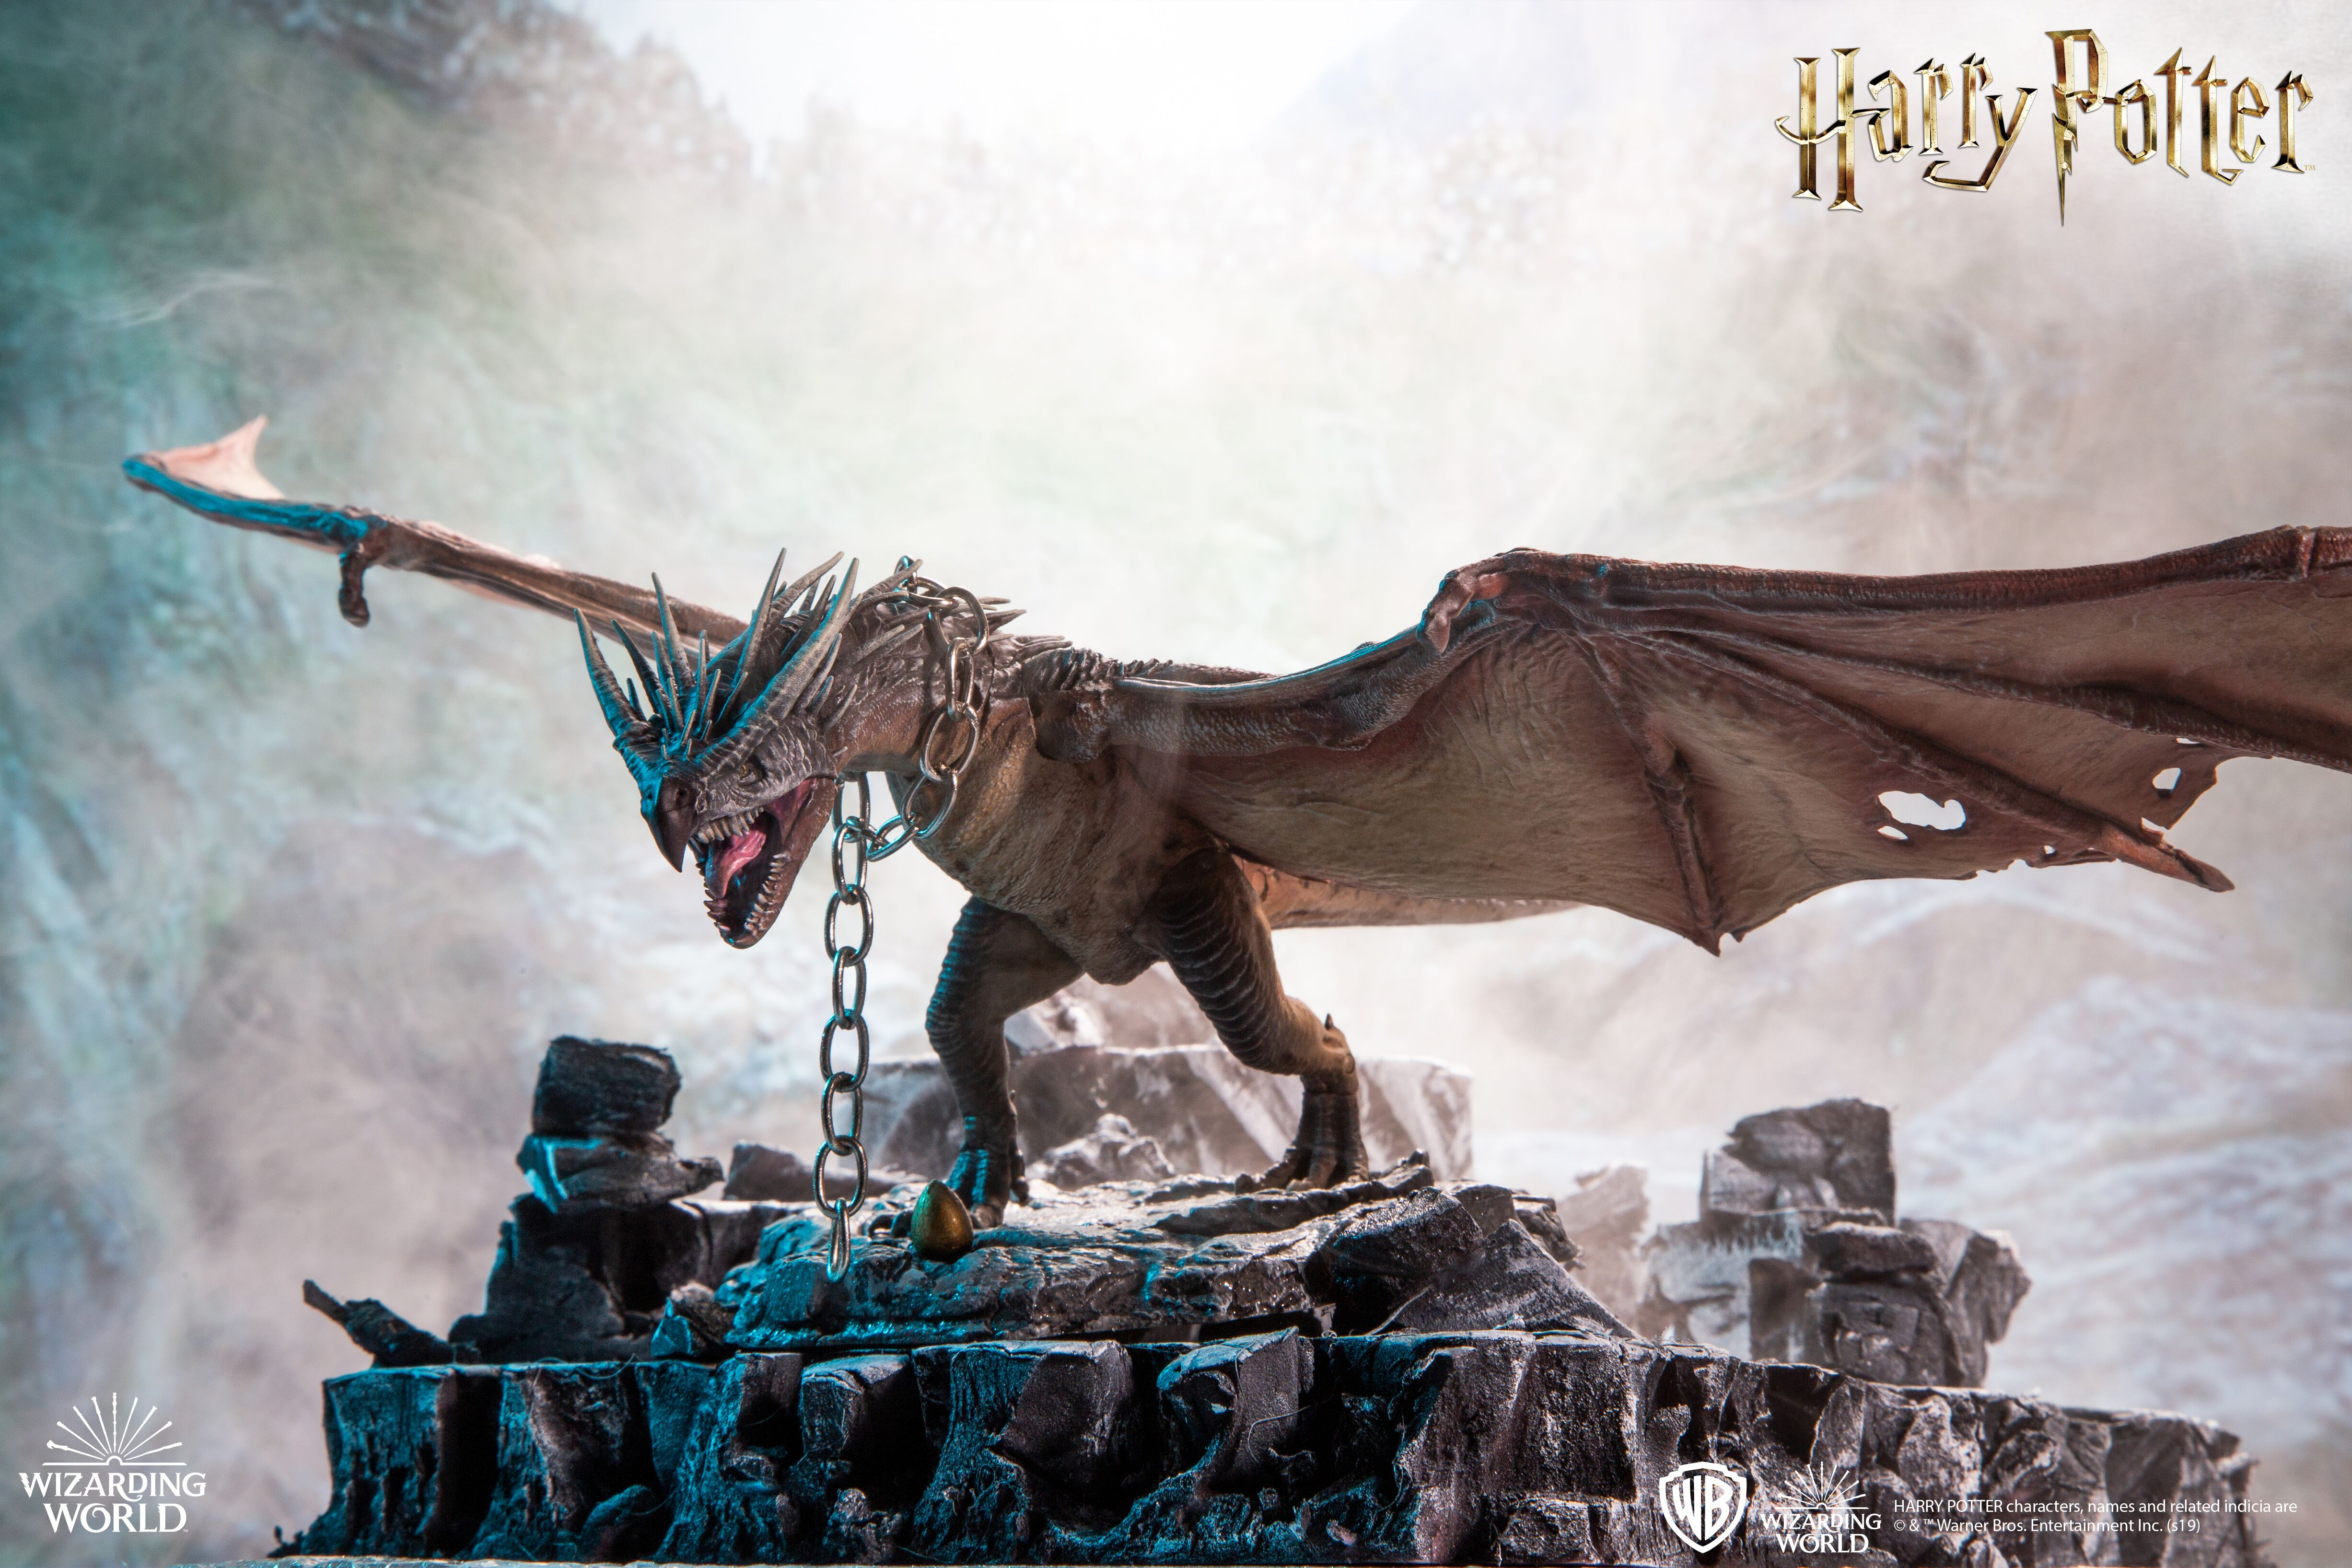 This beautiful and lifelike figure of a Hungarian Horntail is new in McFarlane Toys' creature line.